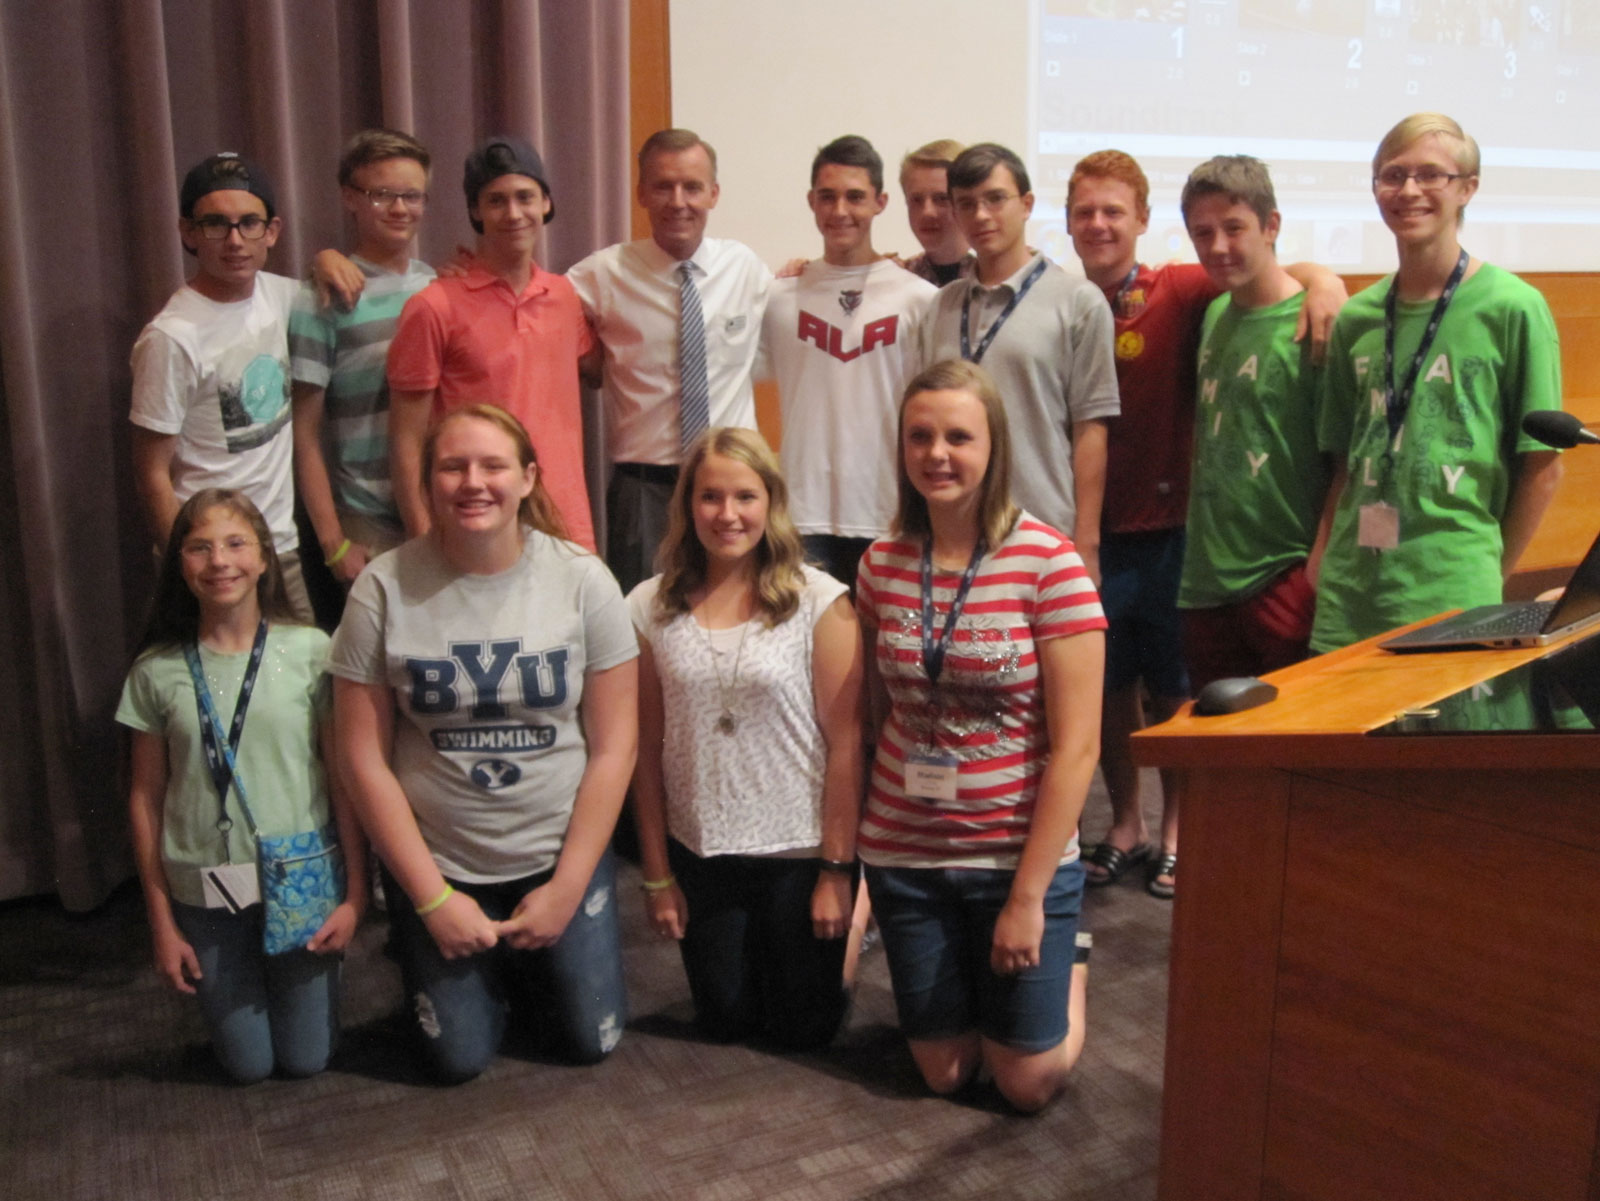 BYU myFamily History Youth Camp participants with John Bytheway